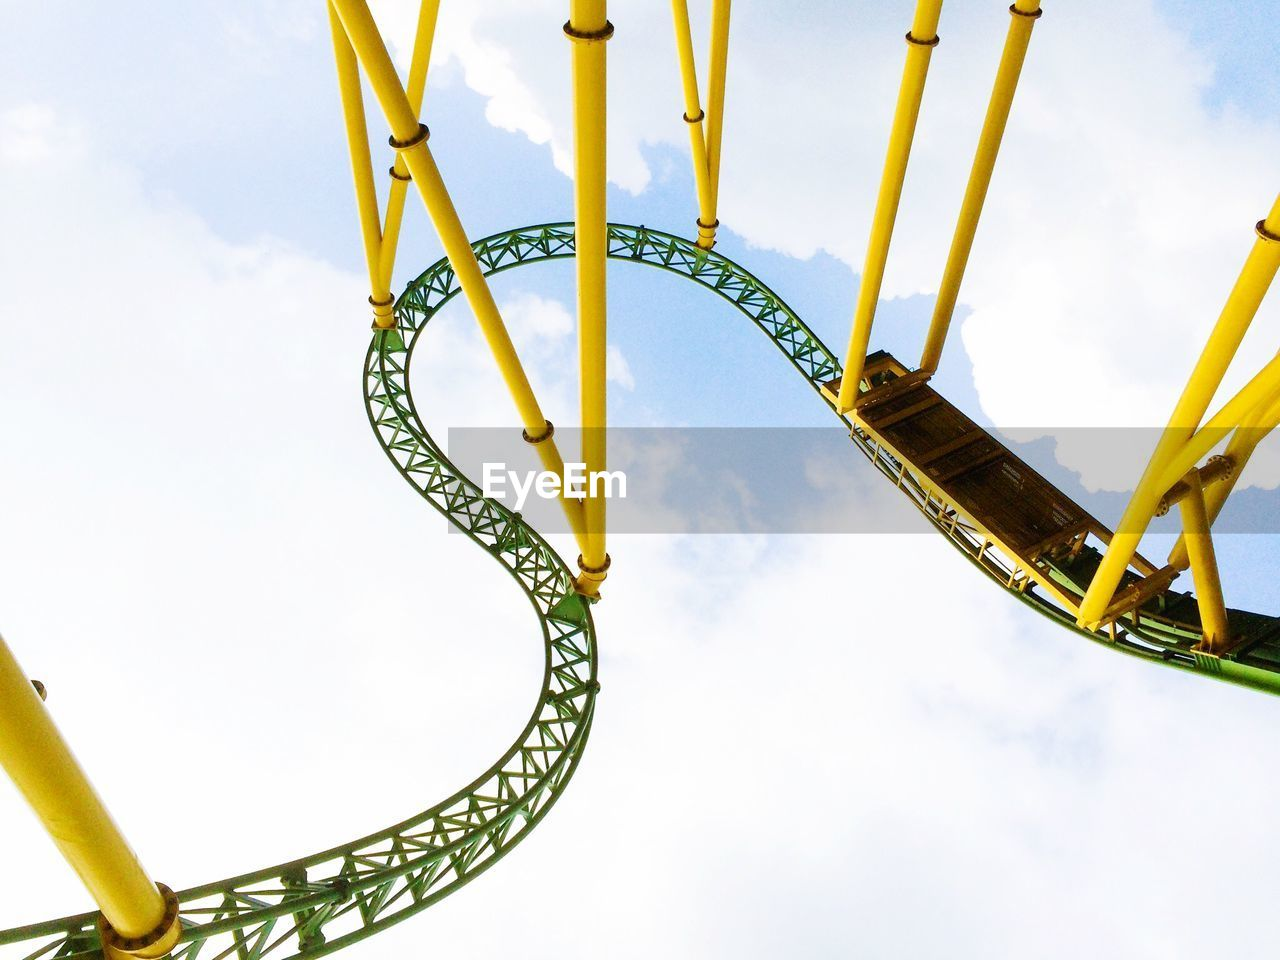 Low Angle View Of Rollercoaster Track Against Sky